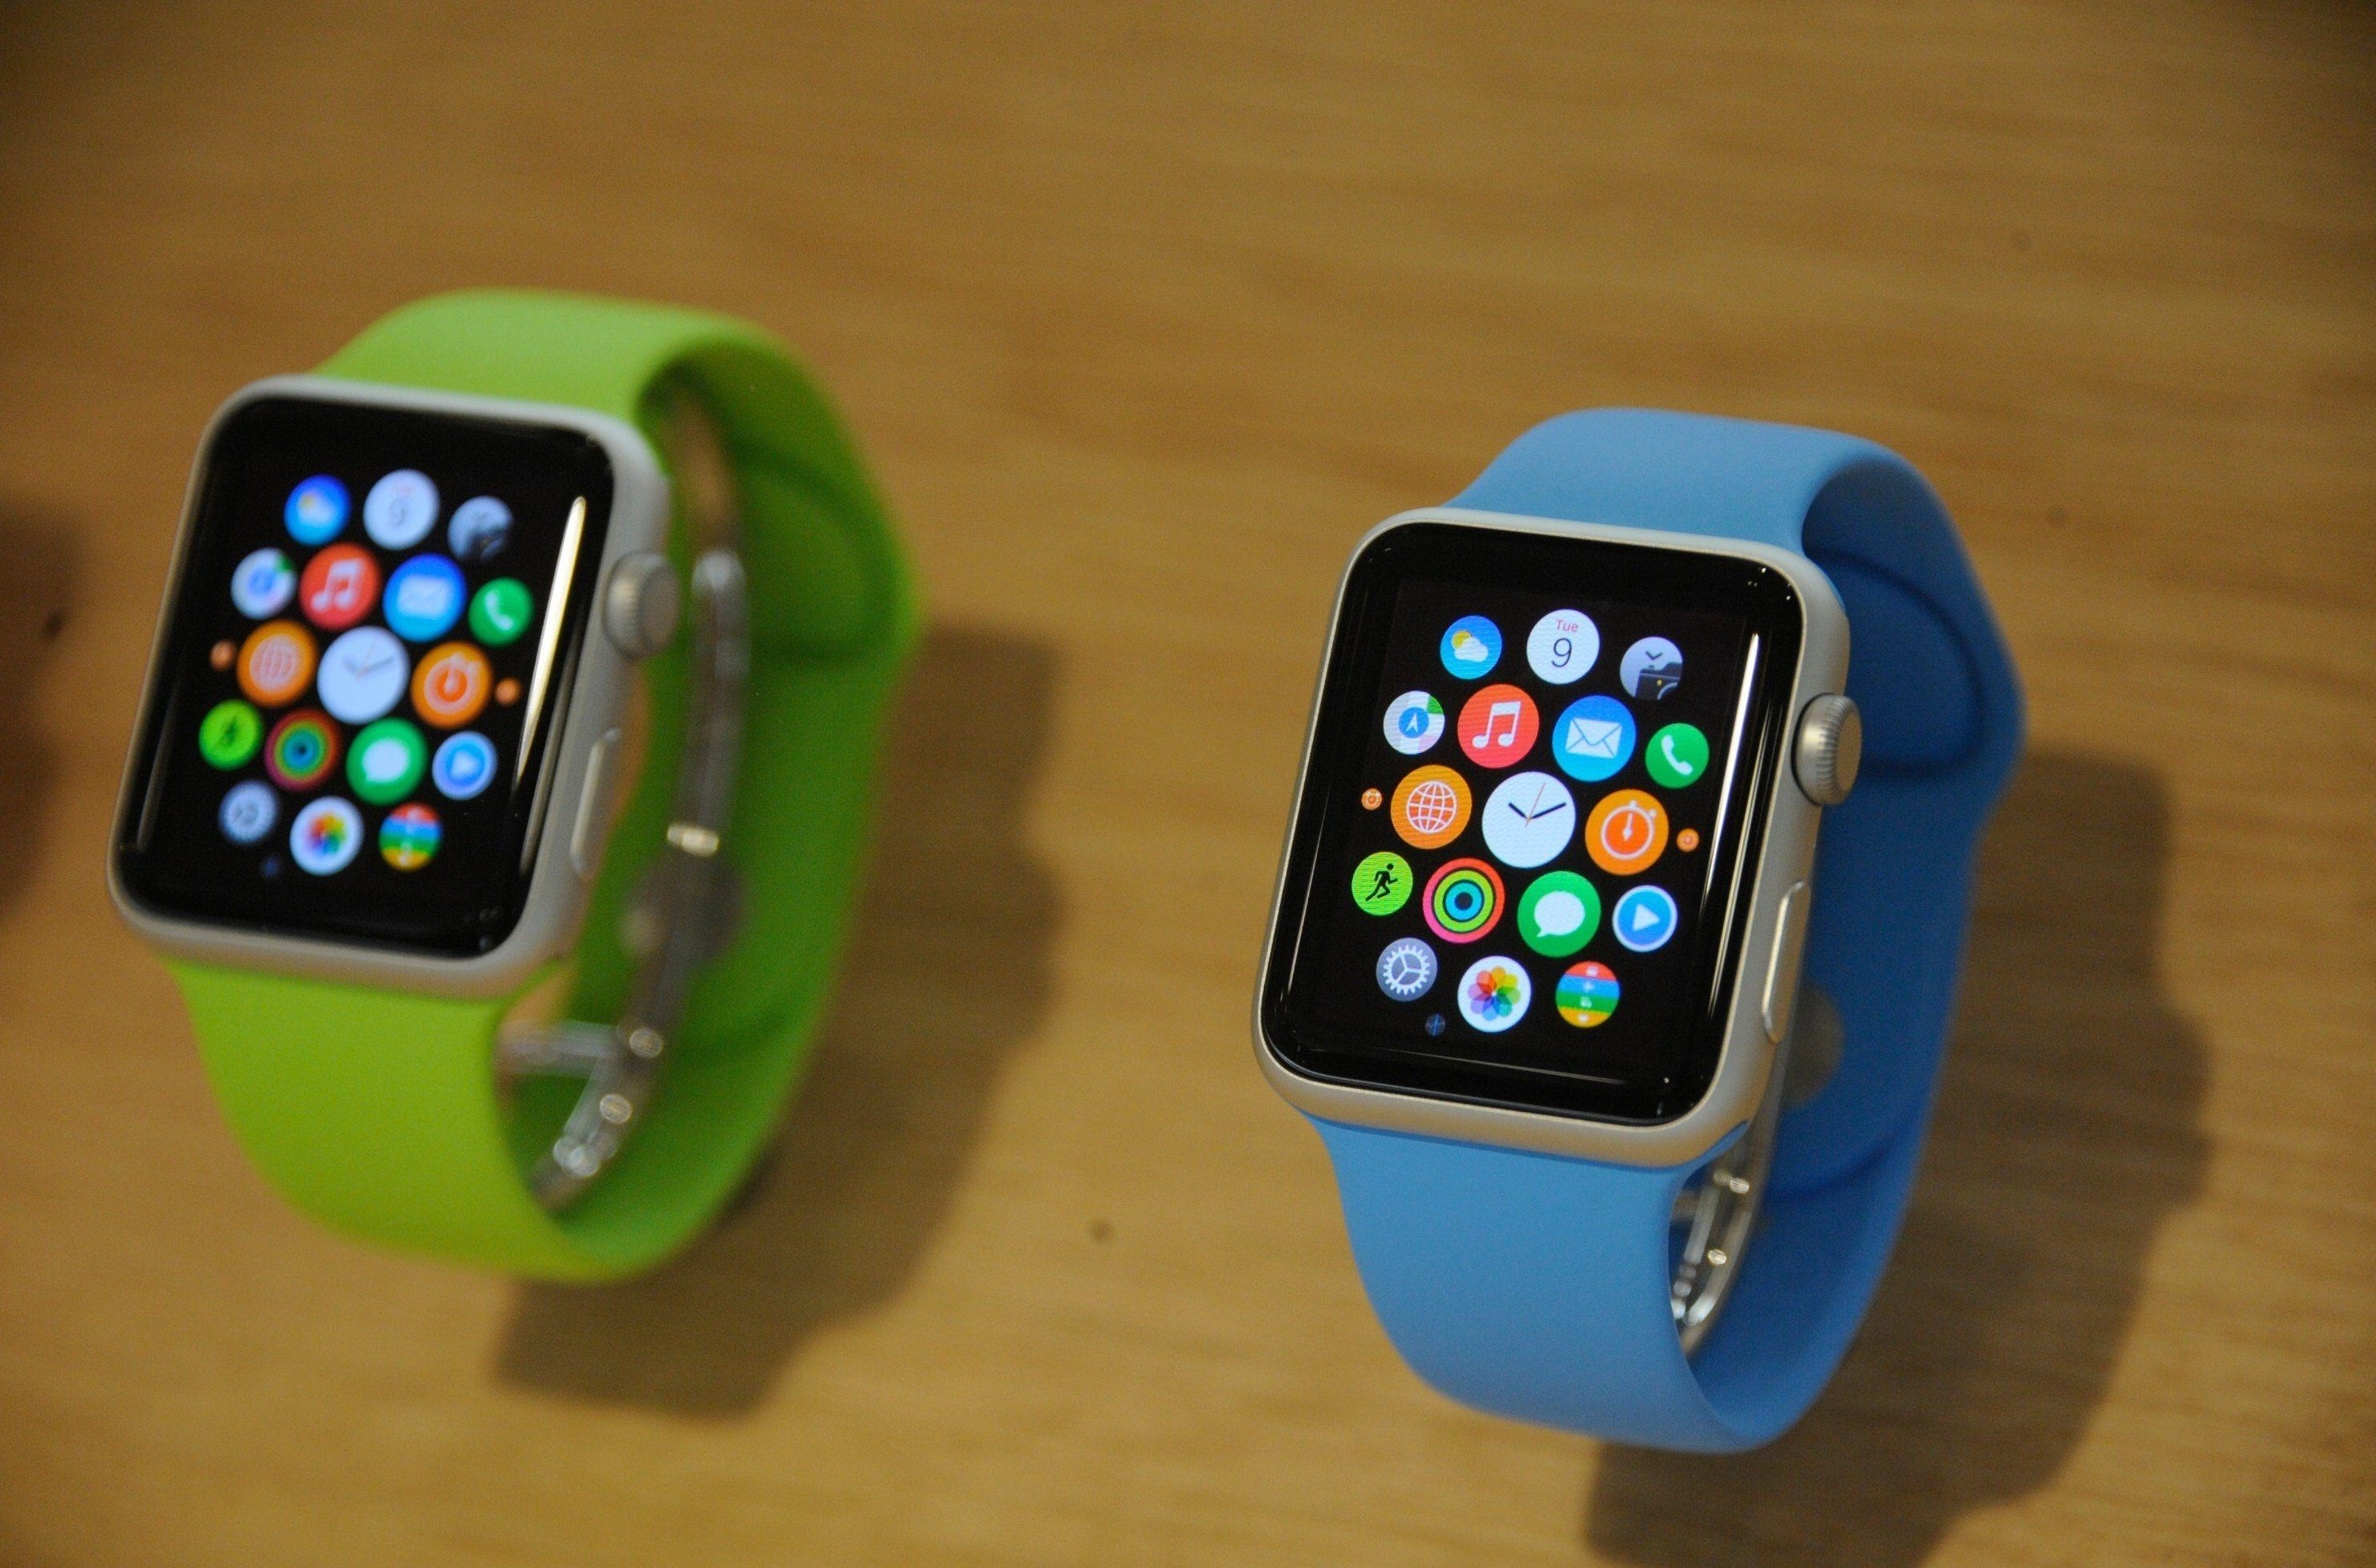 Apple Watch at Colette store, Paris, France - 30 Sep 2014  - applewatchgeneric - Apple Pay and security – what you need to know